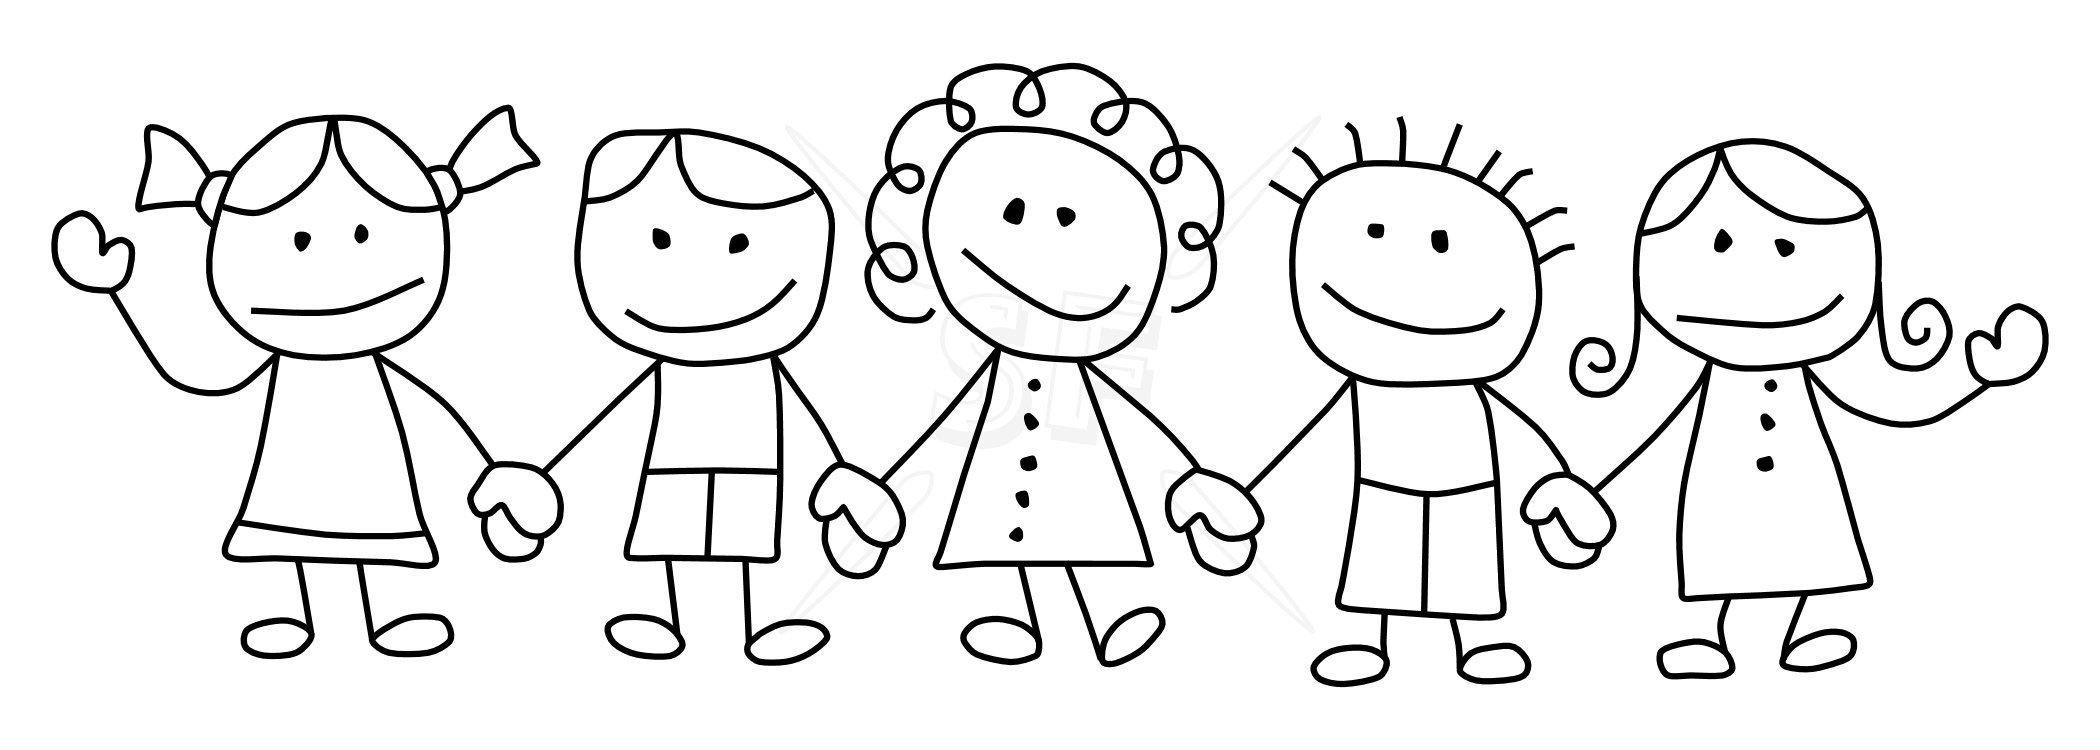 Children Holding Hands Clipart.